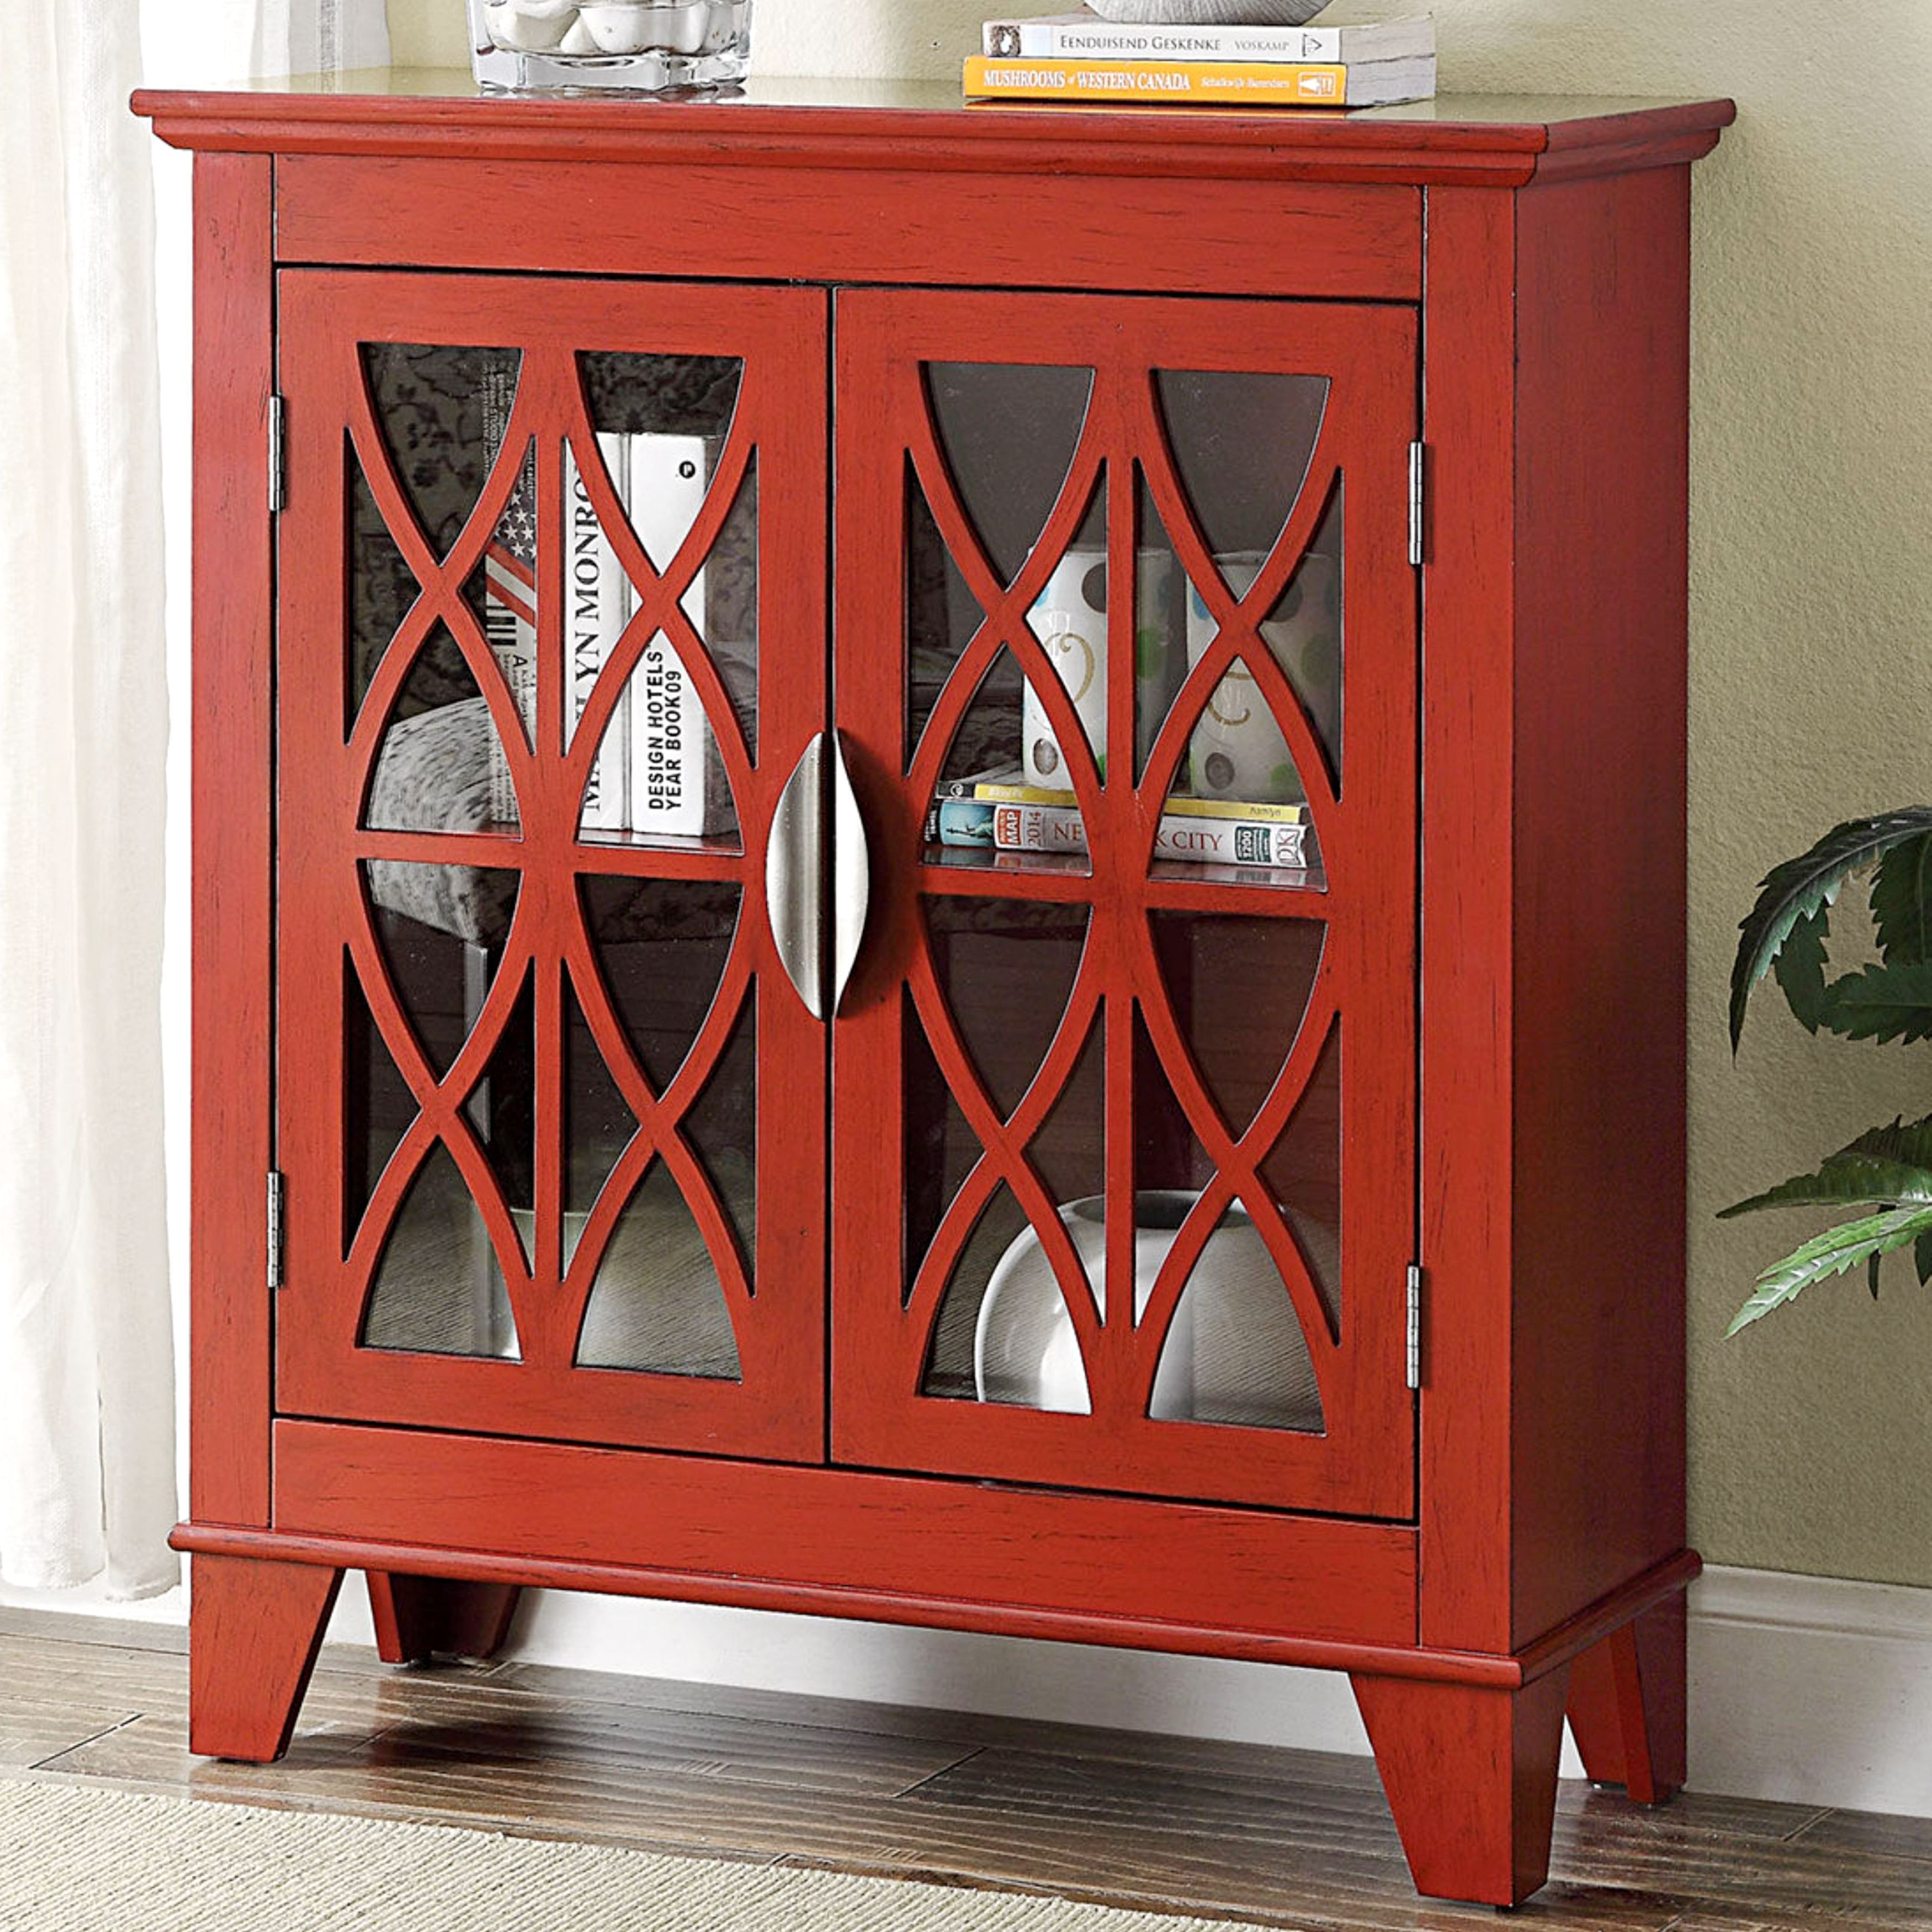 target martin one escape room law red benga accent appoin meaning cabinet punjabi cabinets log antique whitewashed shane jobs office white furniture kannada rustic bayside marathi